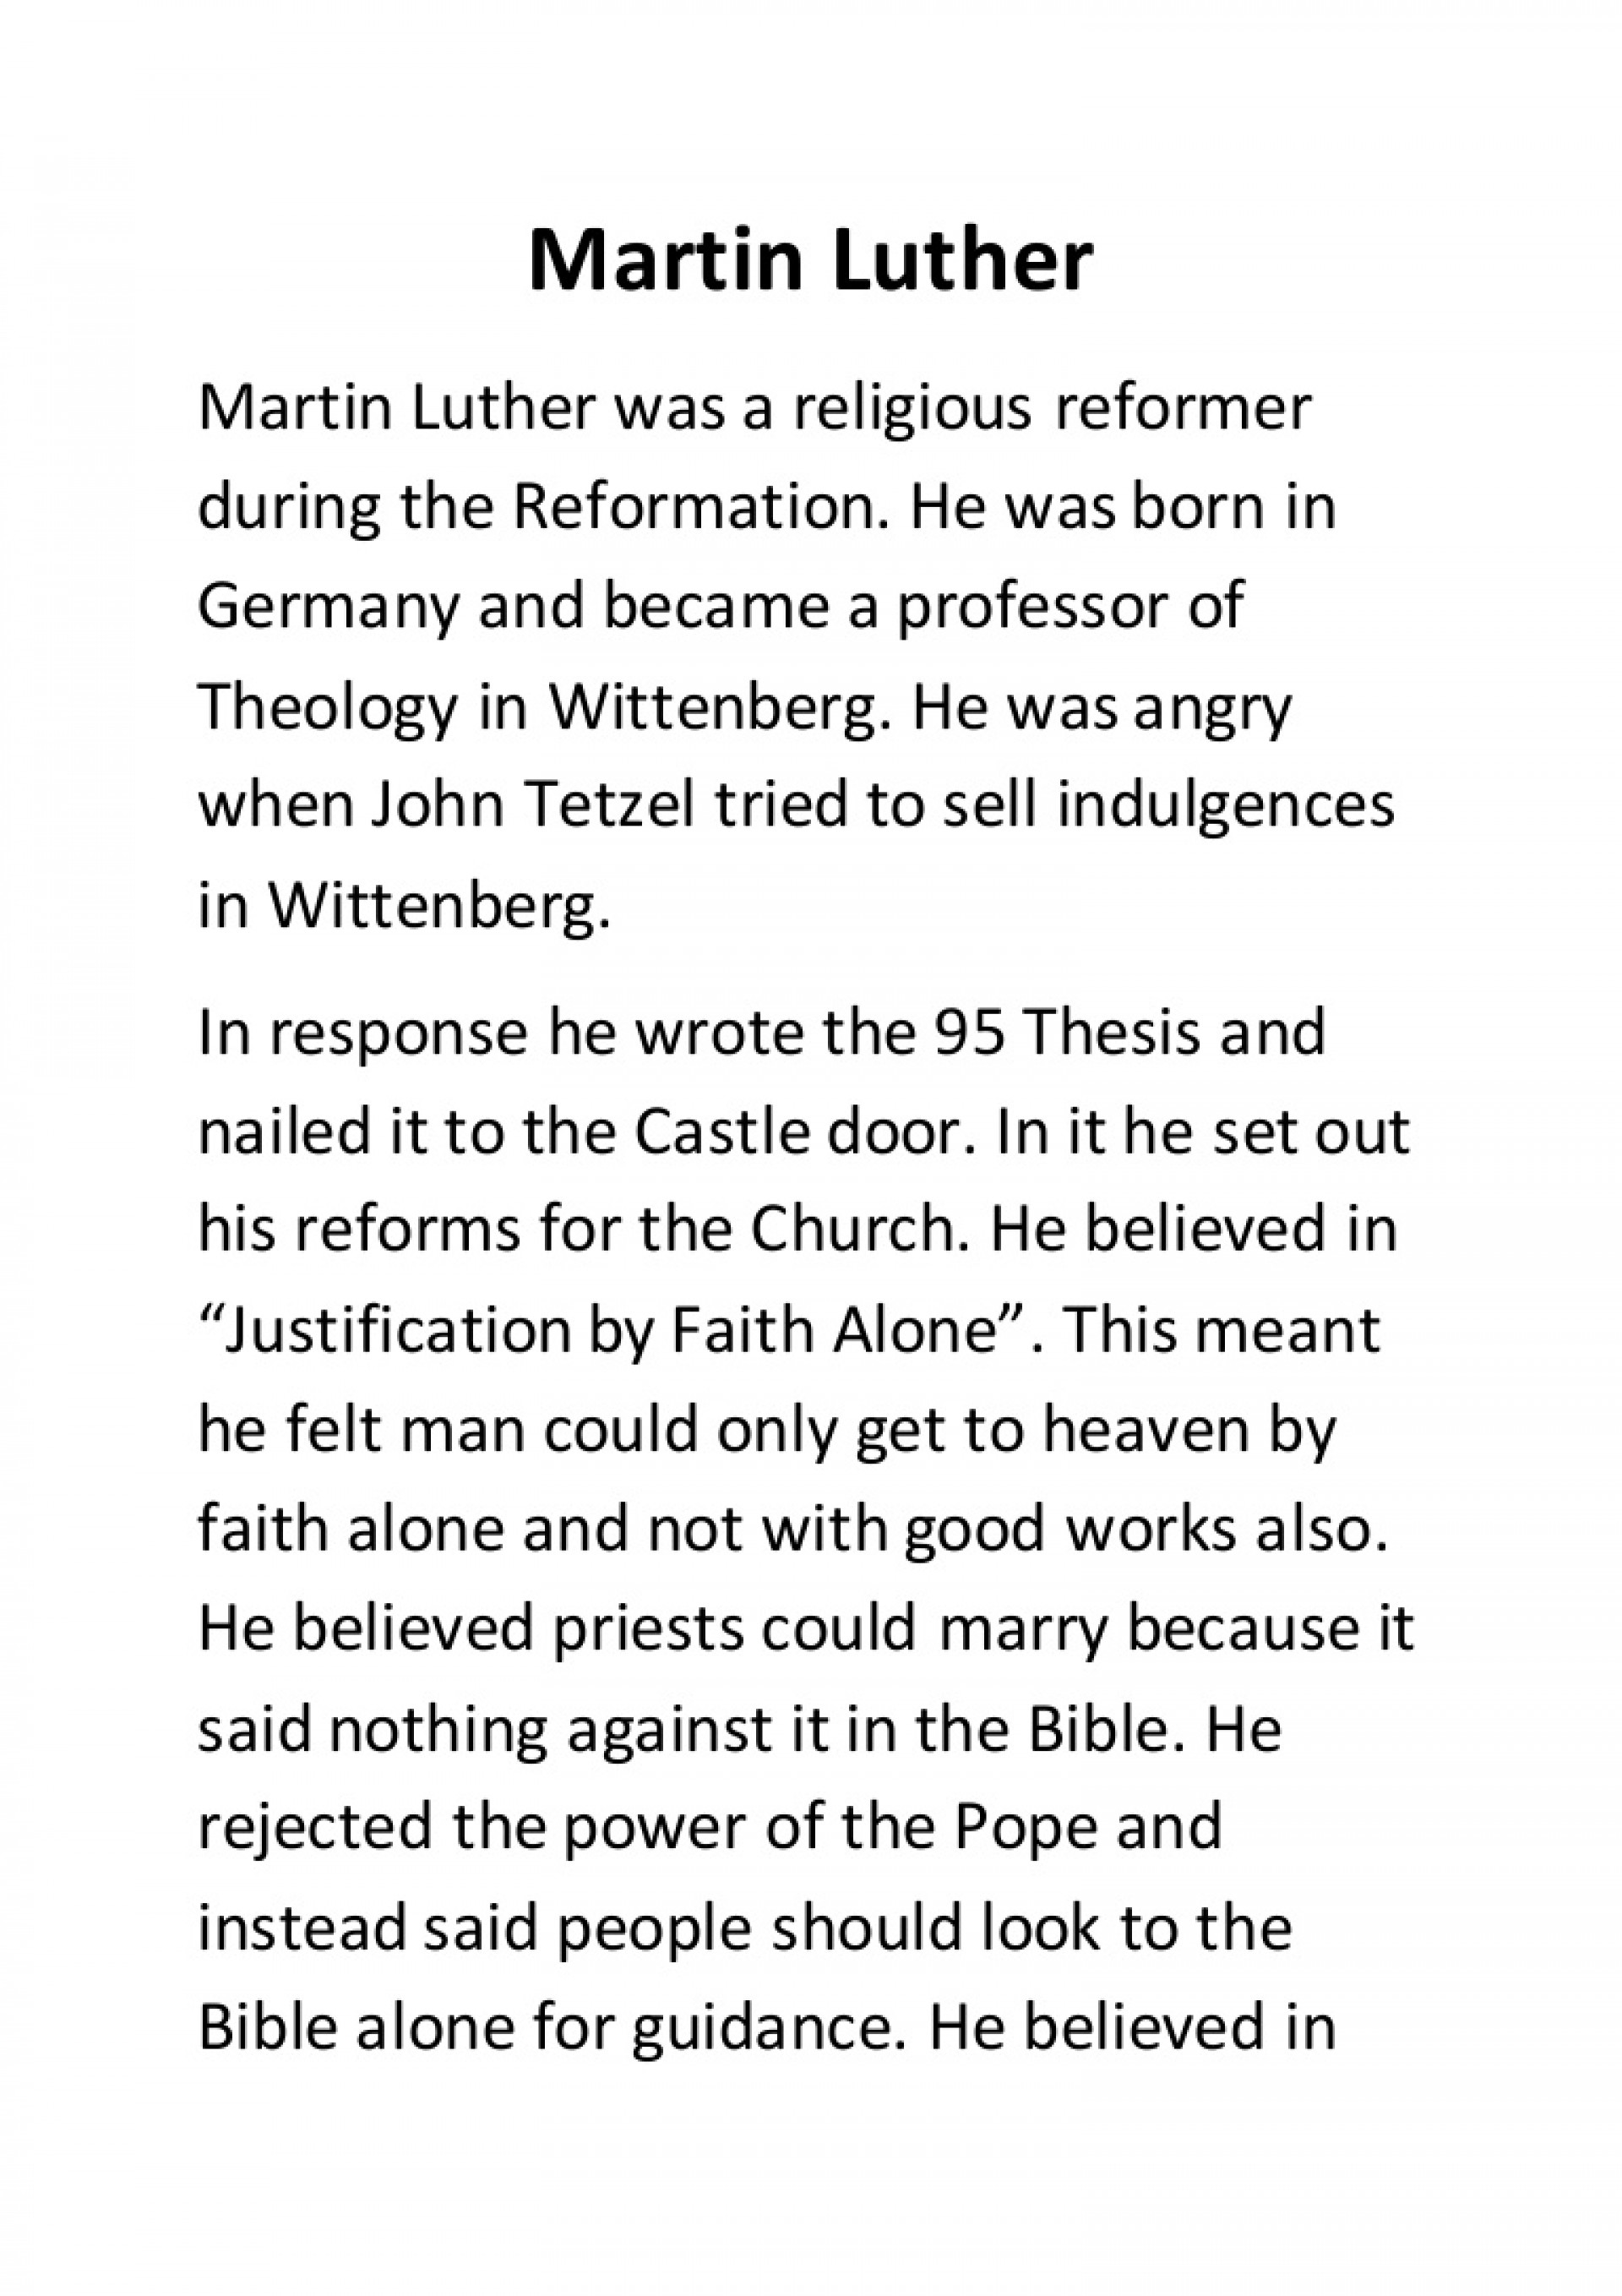 001 Essay Example Martinluther Conversion Gate02 Thumbnail Martin Luther Magnificent Reformation 1920